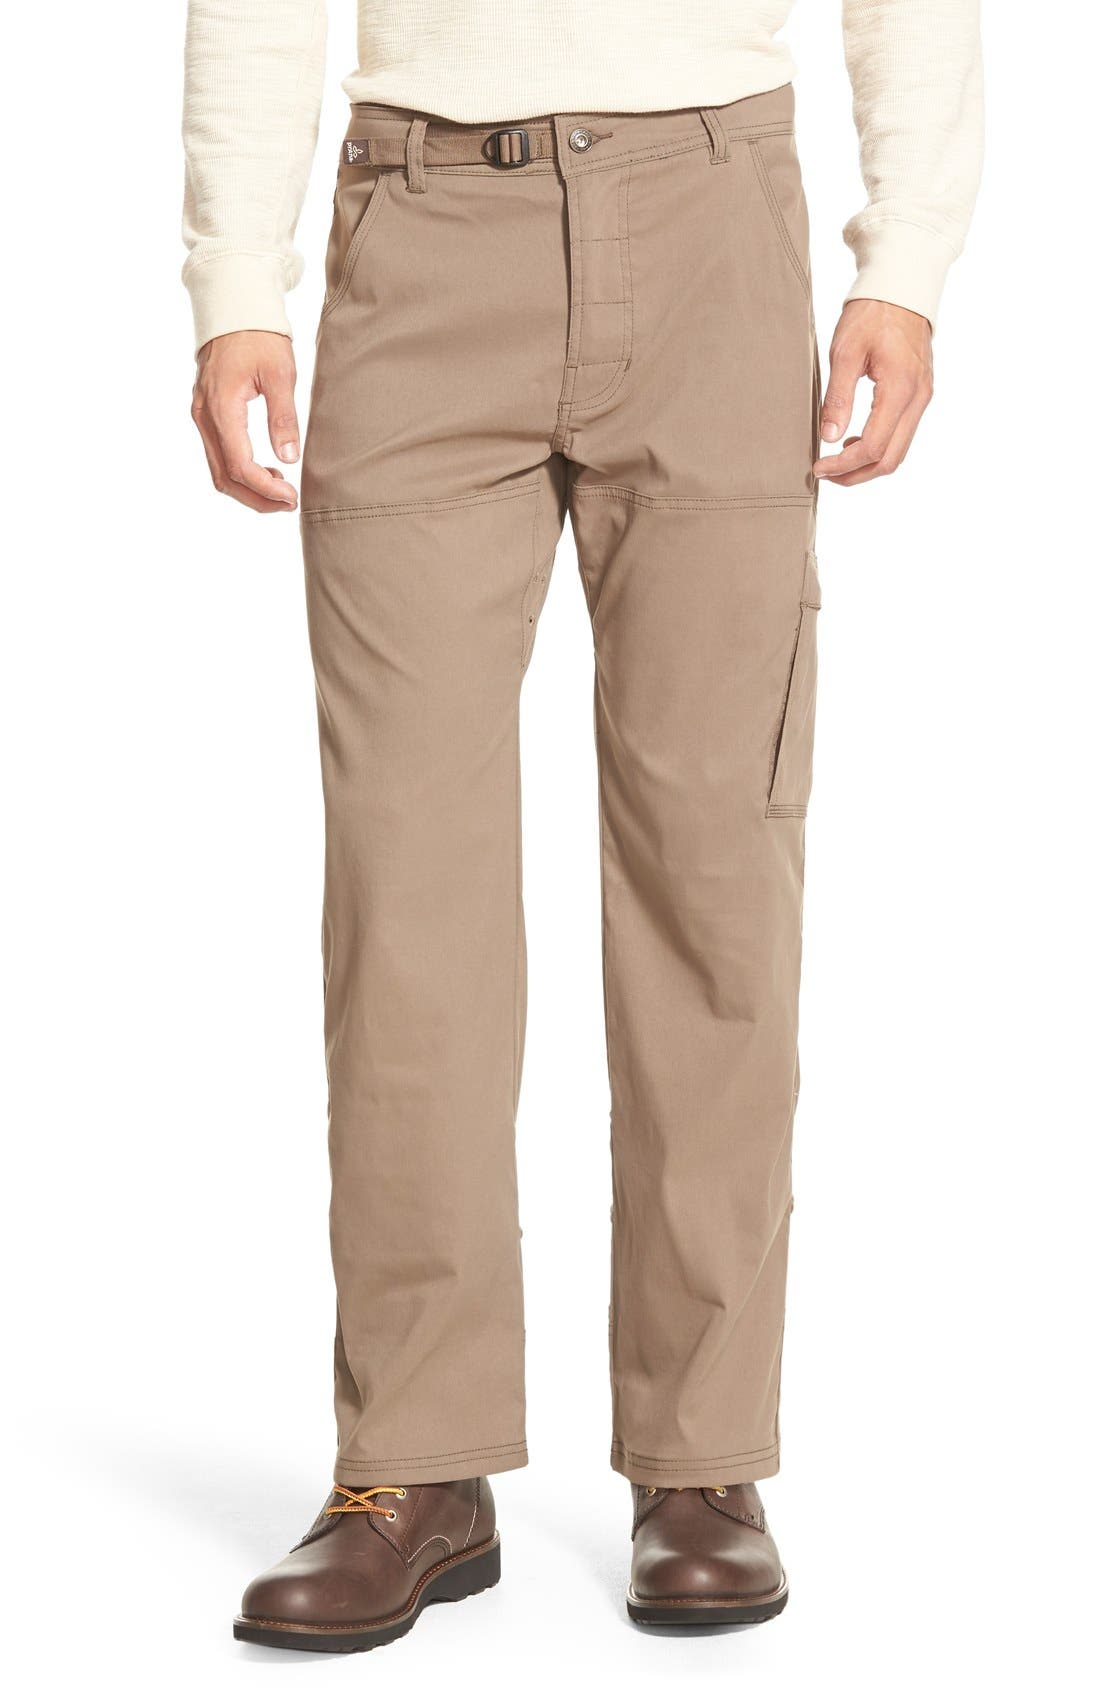 prAna 'Zion' Stretchy Hiking Pants